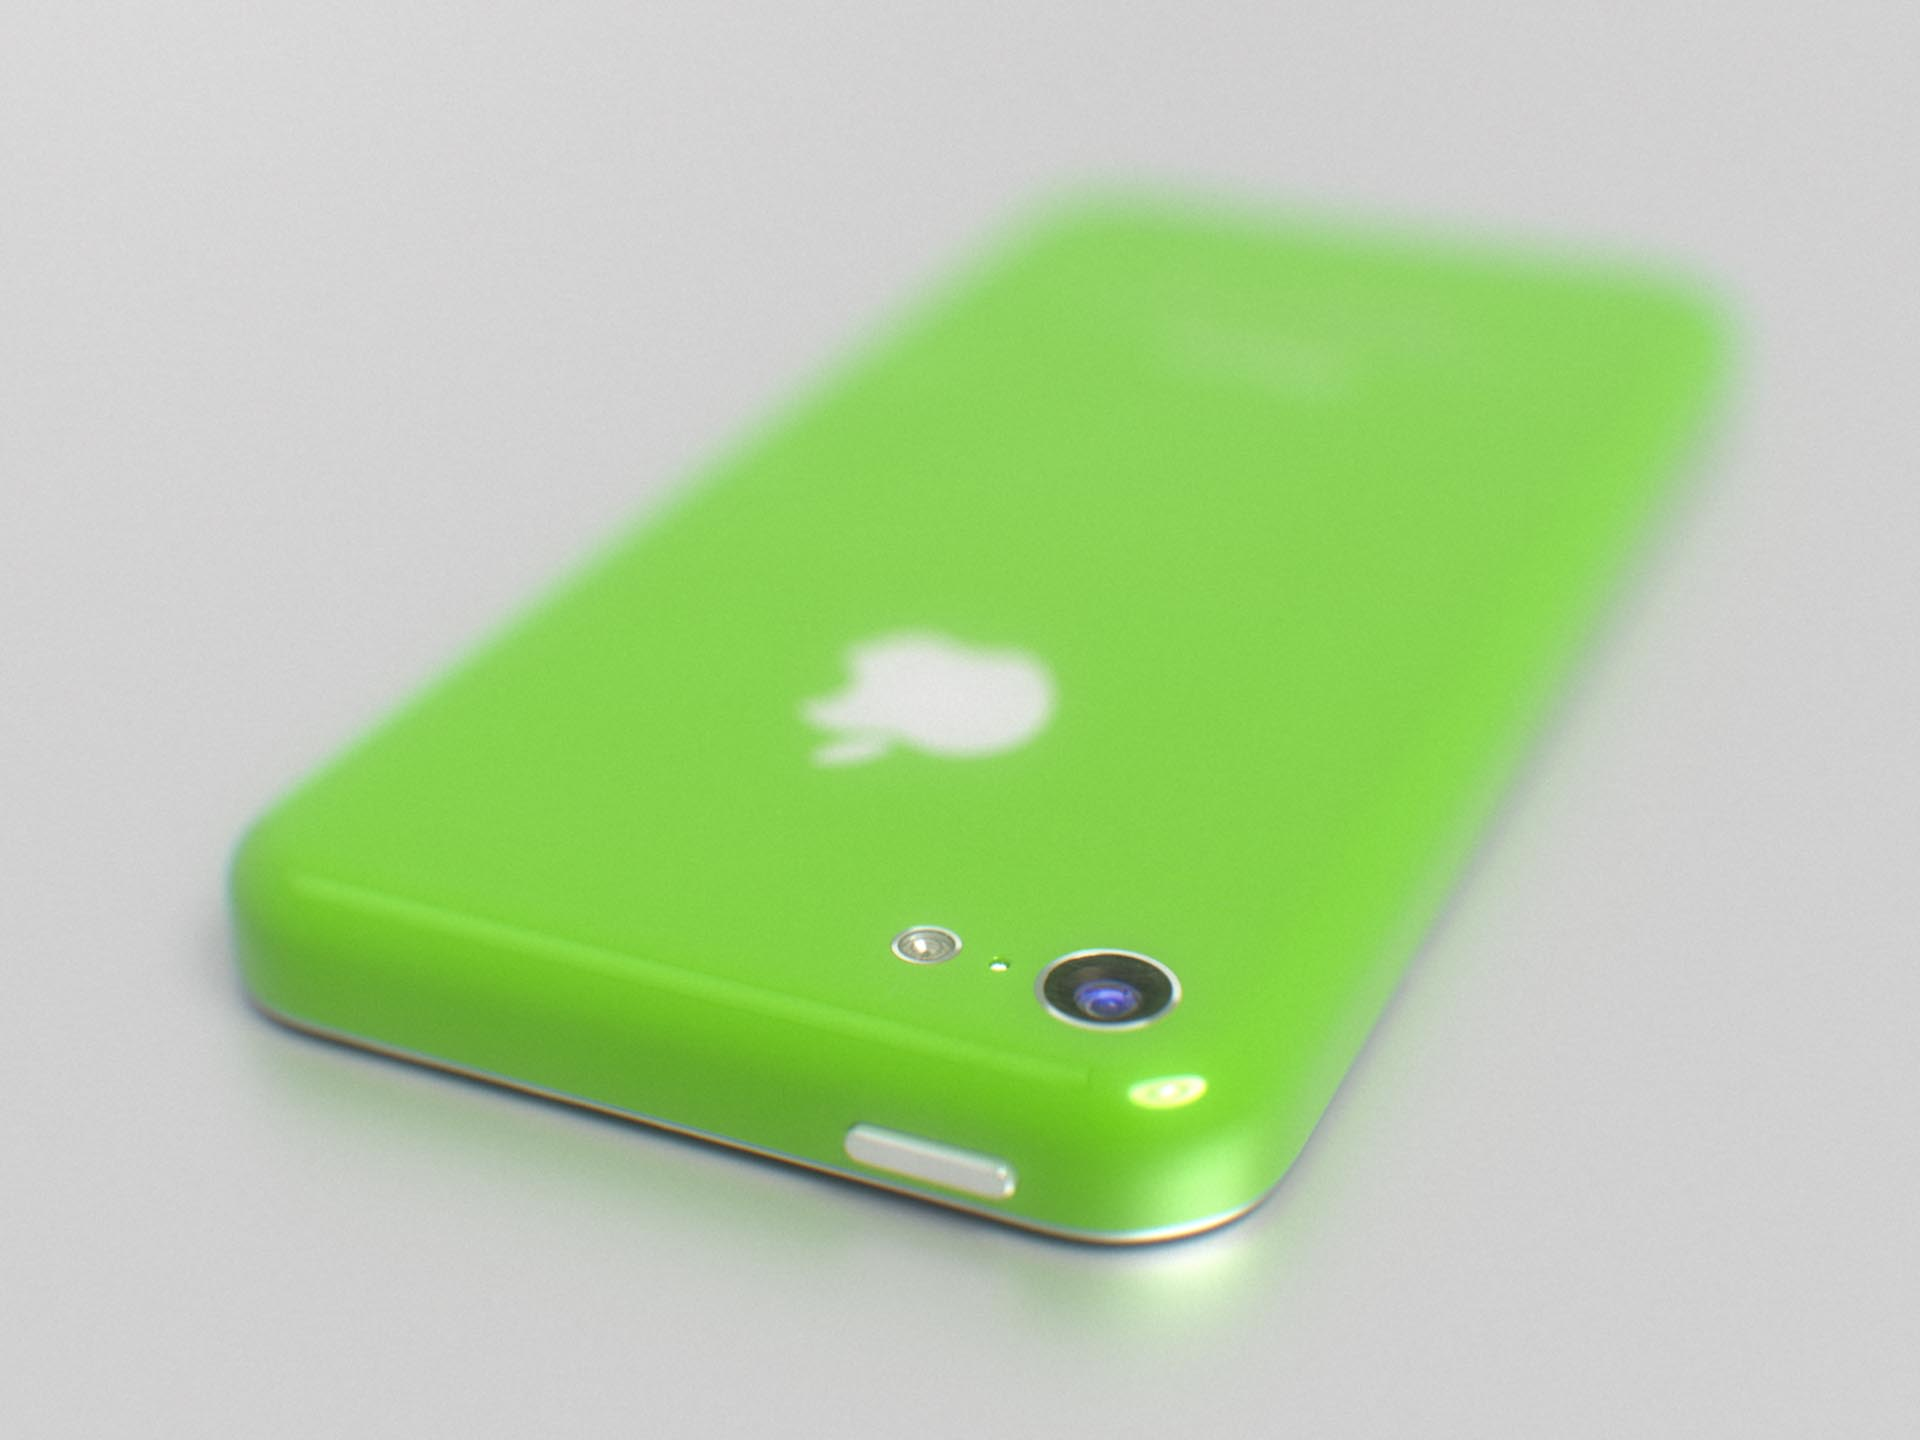 Good Wallpaper Horse Iphone 5c - iphone-5c-green-back-top-martin-hajek-001  Image_371161.jpg